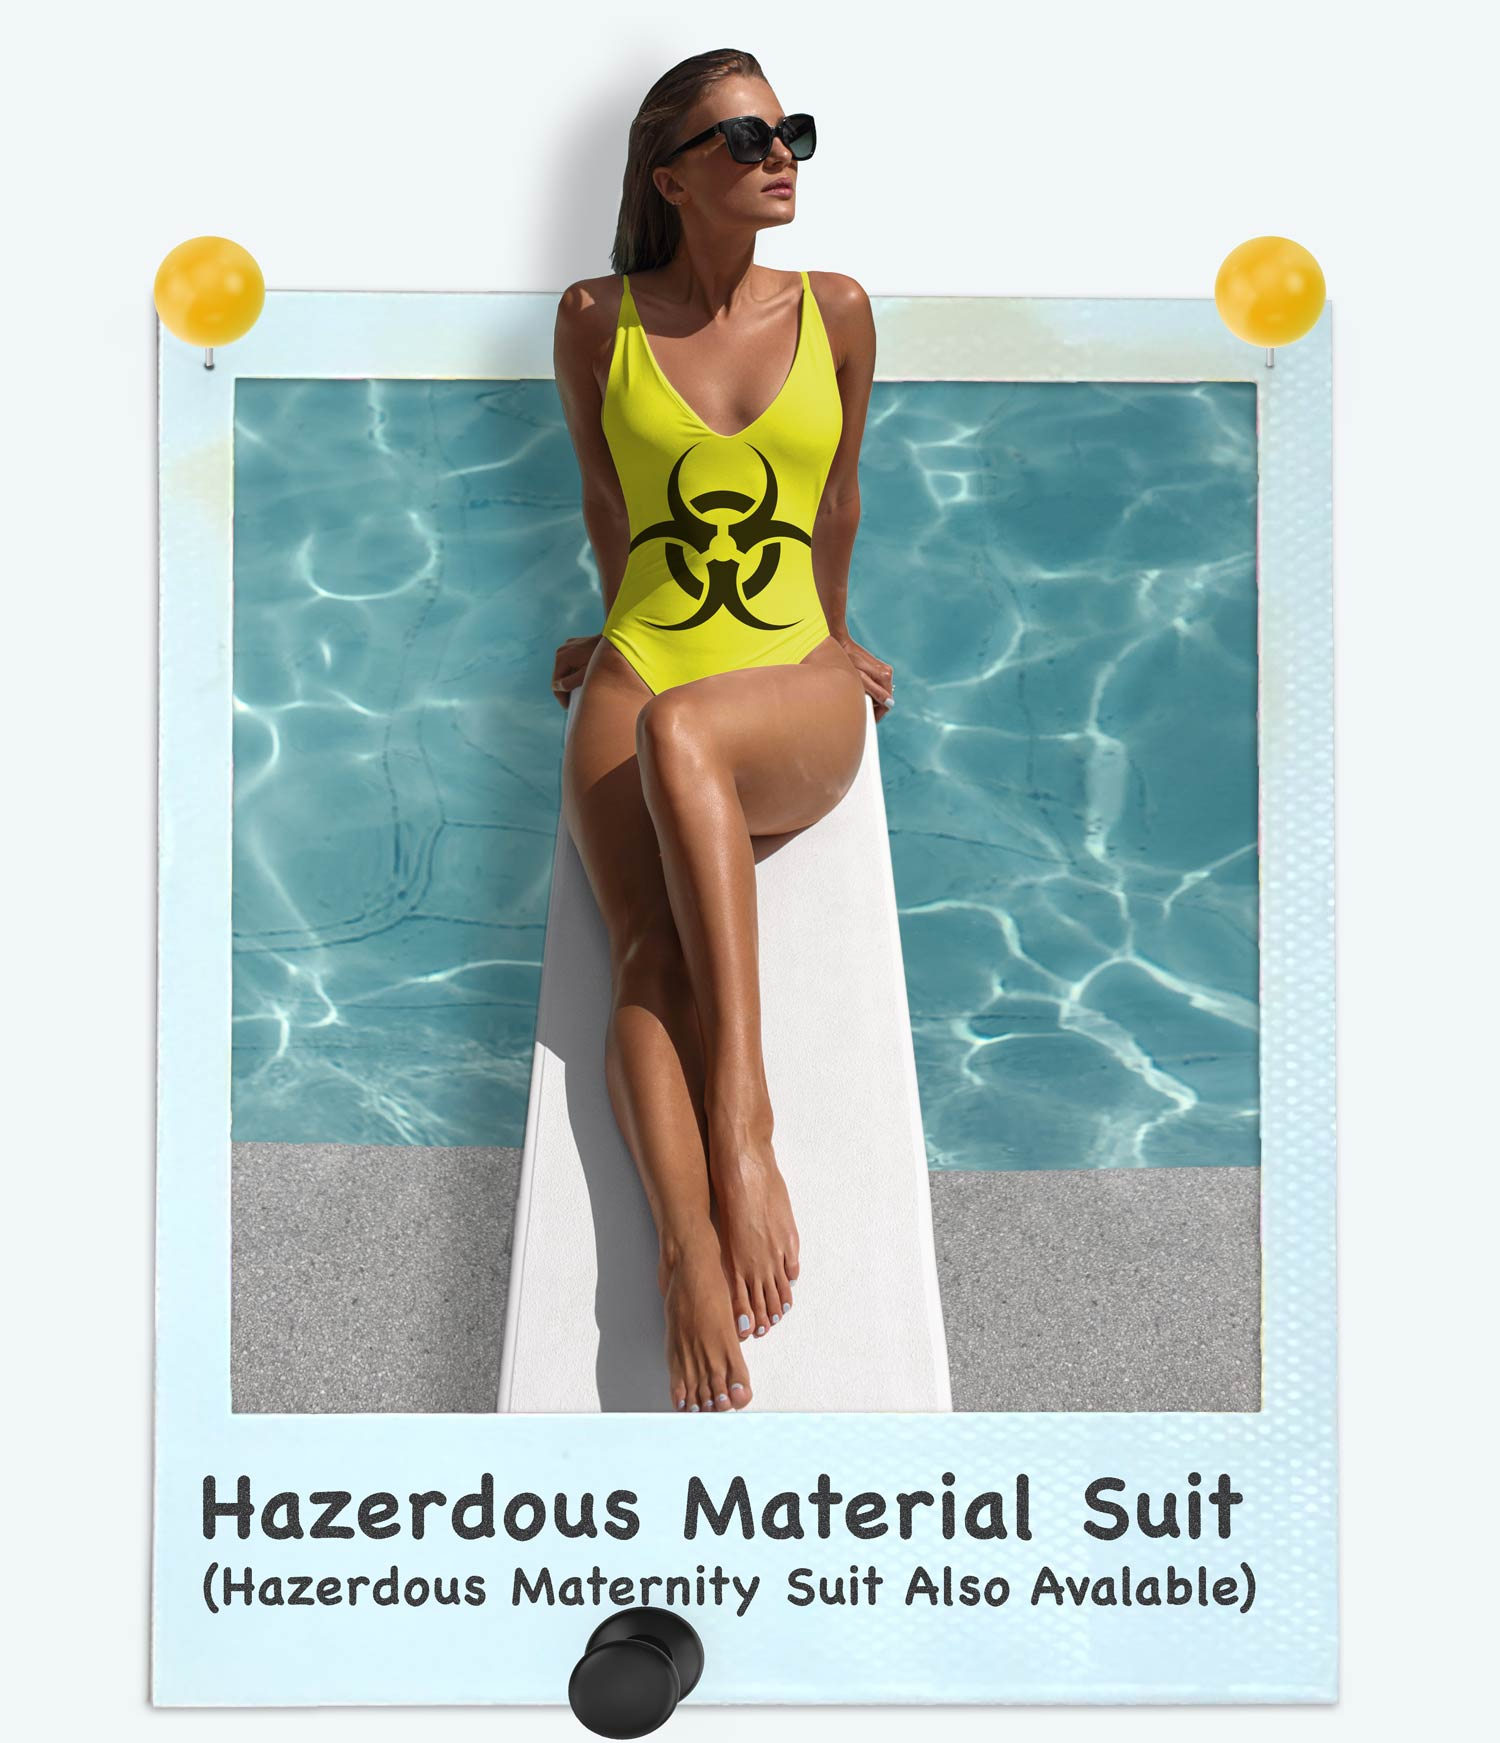 Attractive women modeling the hazardous material suit. The polaroid also has the title and states that a hazardous material suit is also available.